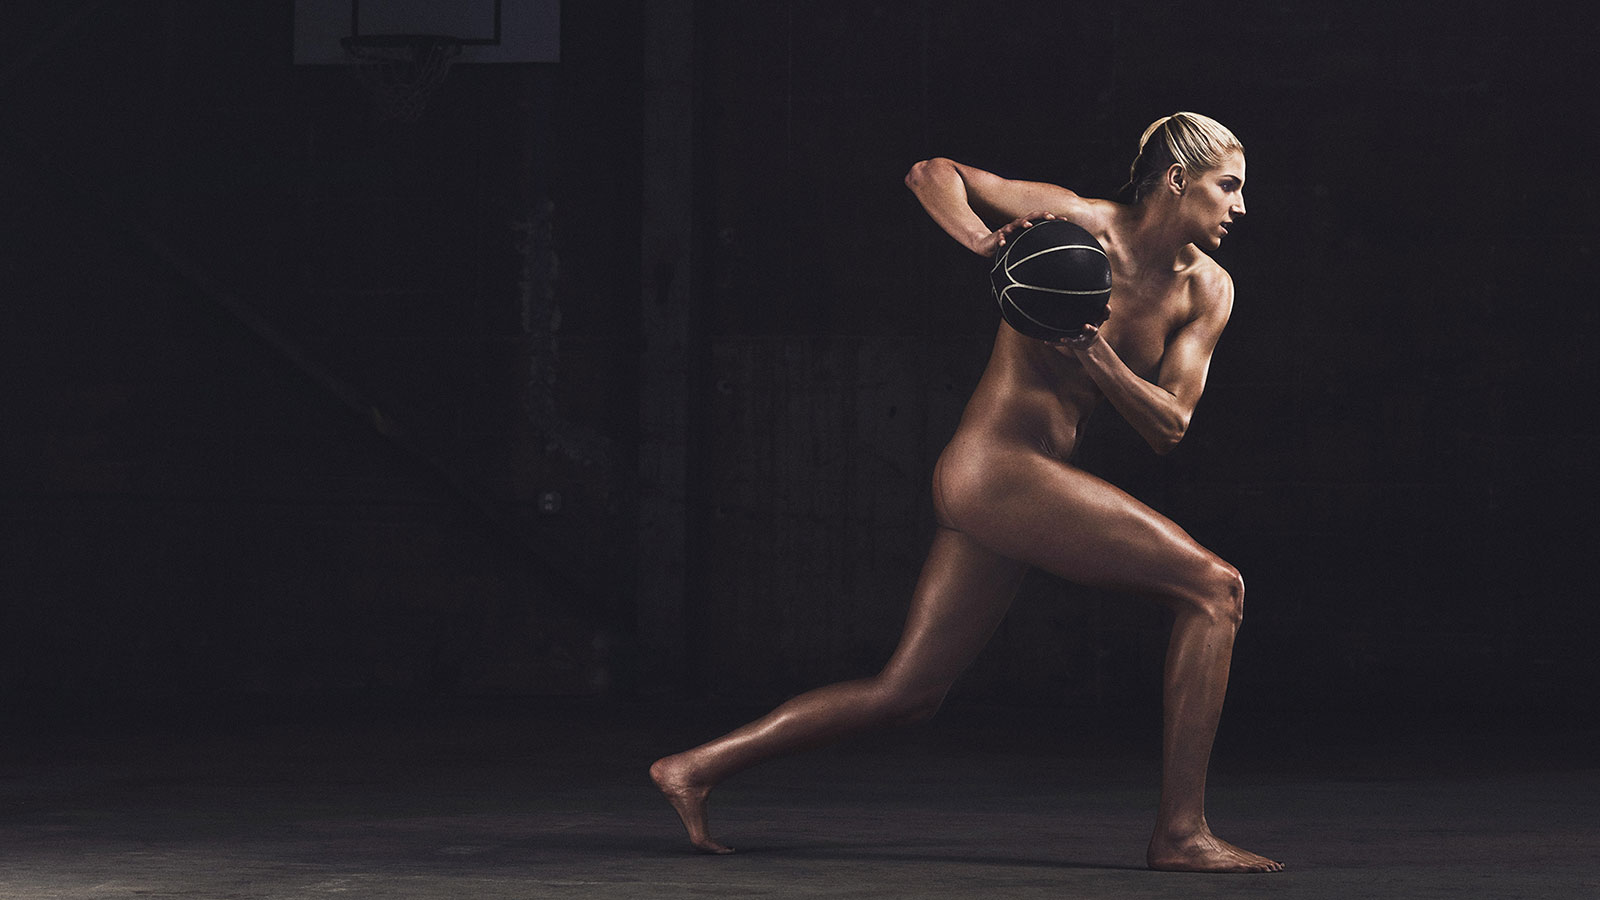 Elena Delle Donne, WNBA, featured in the Body Issue 2016: Fully Exposed on ESPN the Magazine